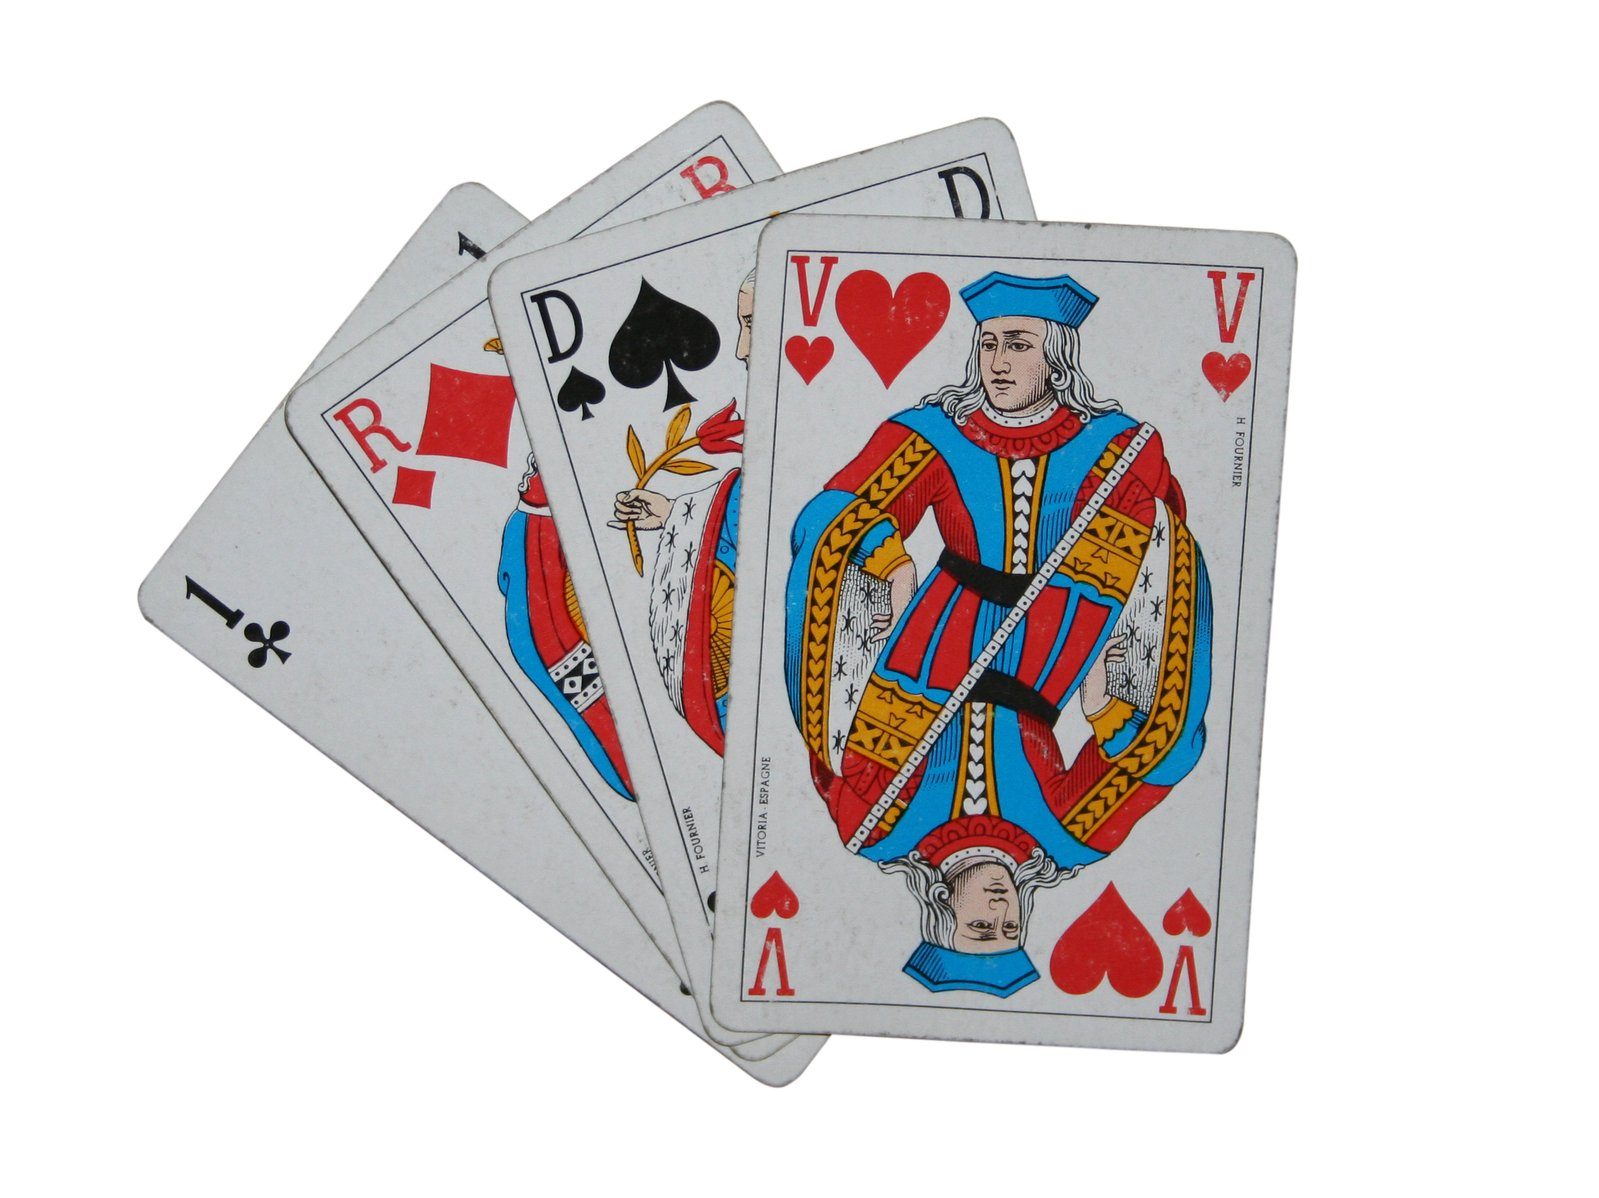 used-playing-card-1420775.jpg